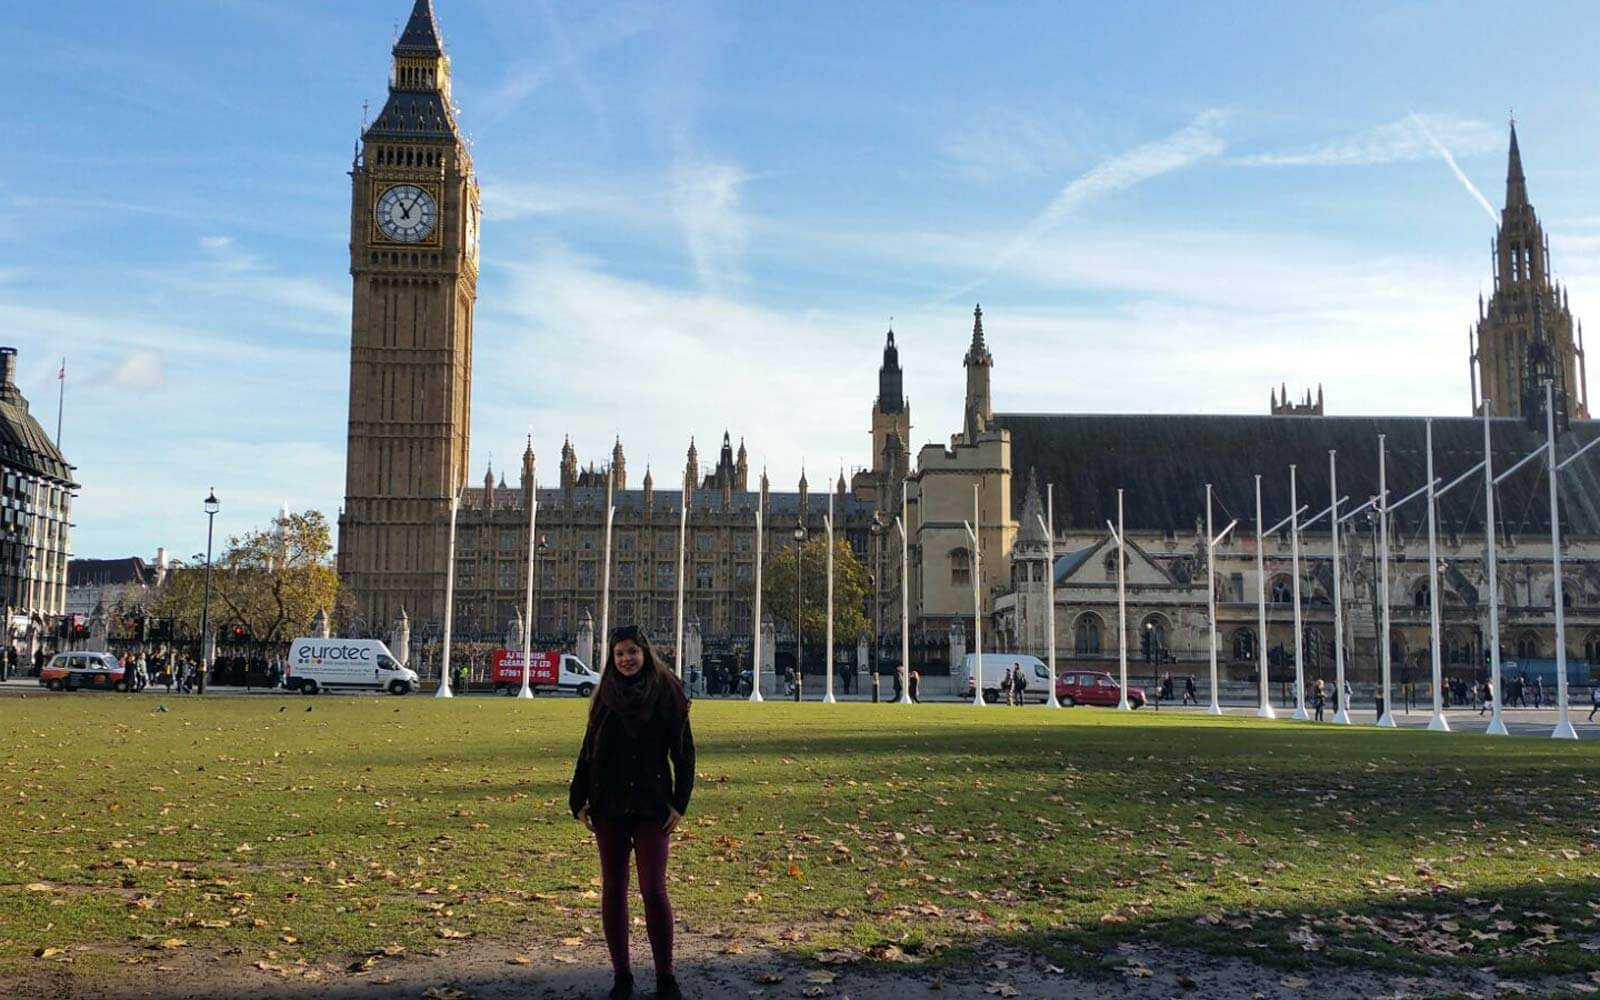 Wiebke vor dem Big Ben in London